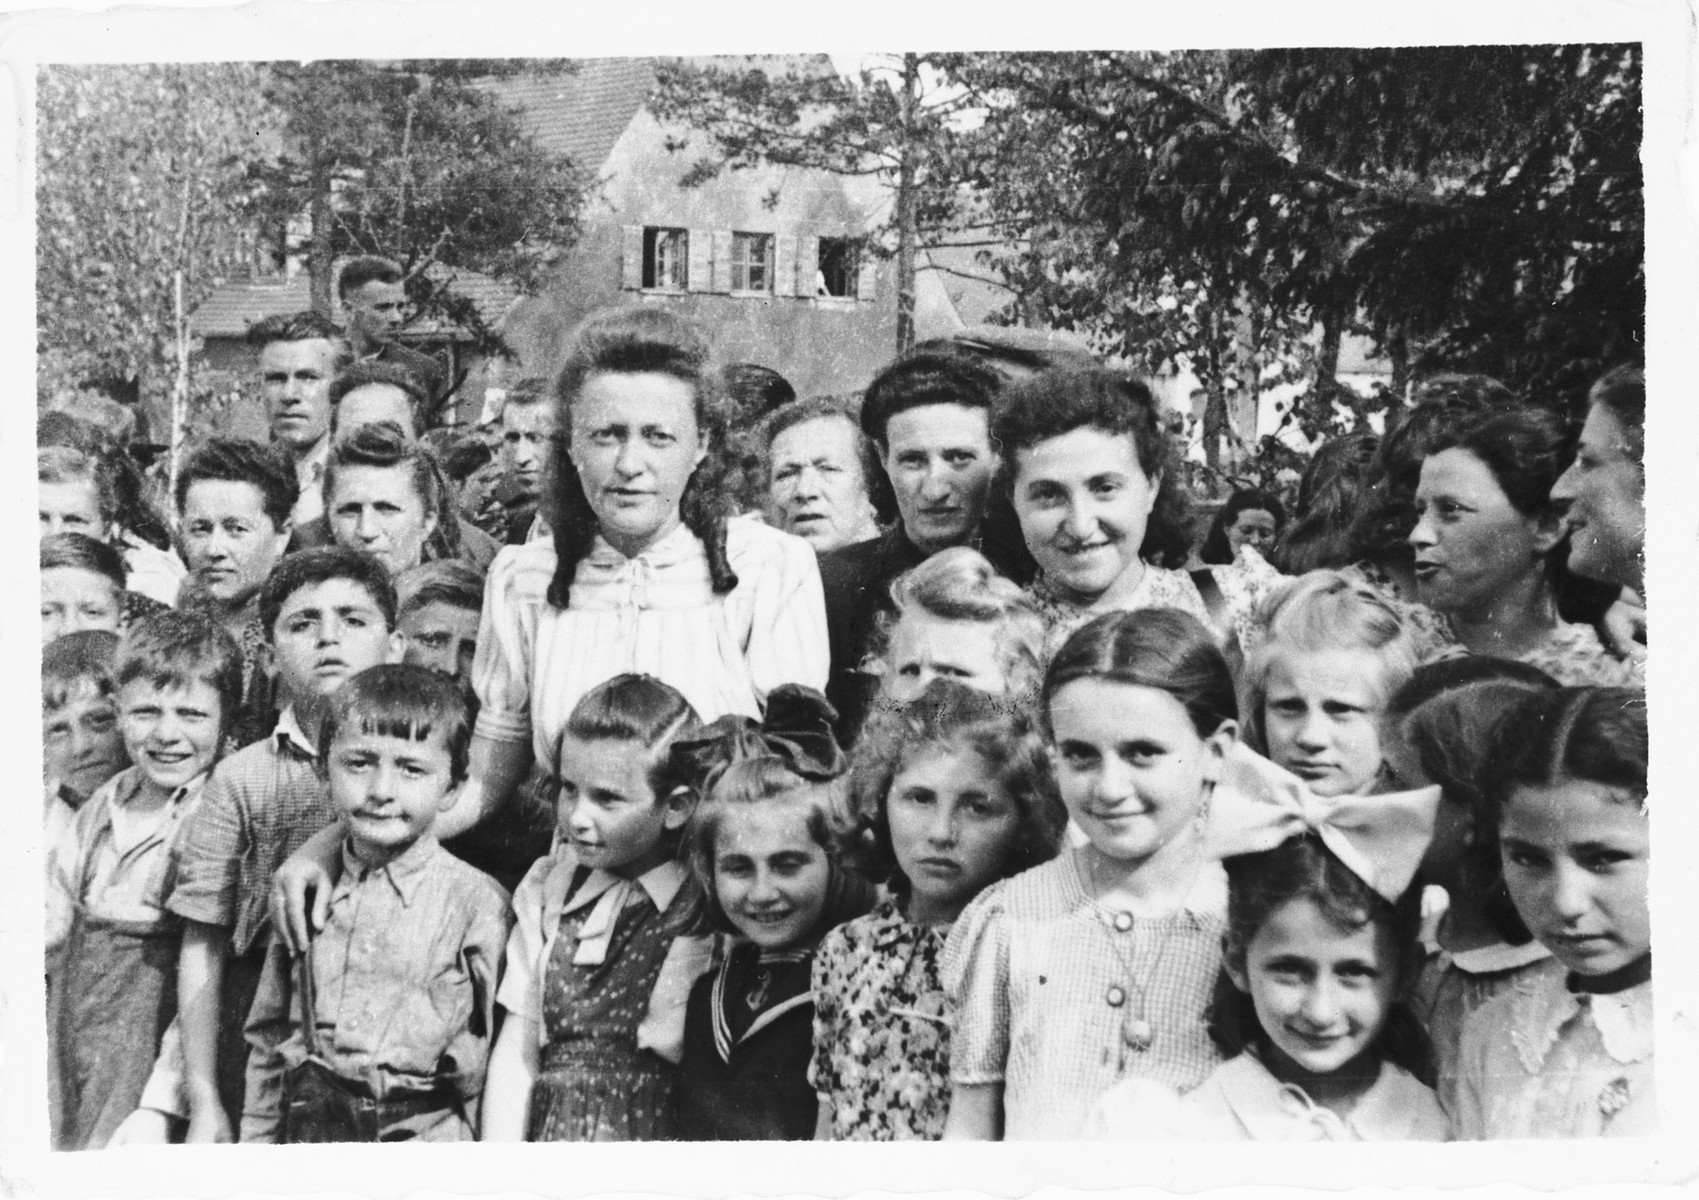 Group portrait of women and young children in the Foehrenwald DP camp.  Among those pictured is Evelyn (Yochevett) Zektzer (later Elbaum), the woman standing on the left.